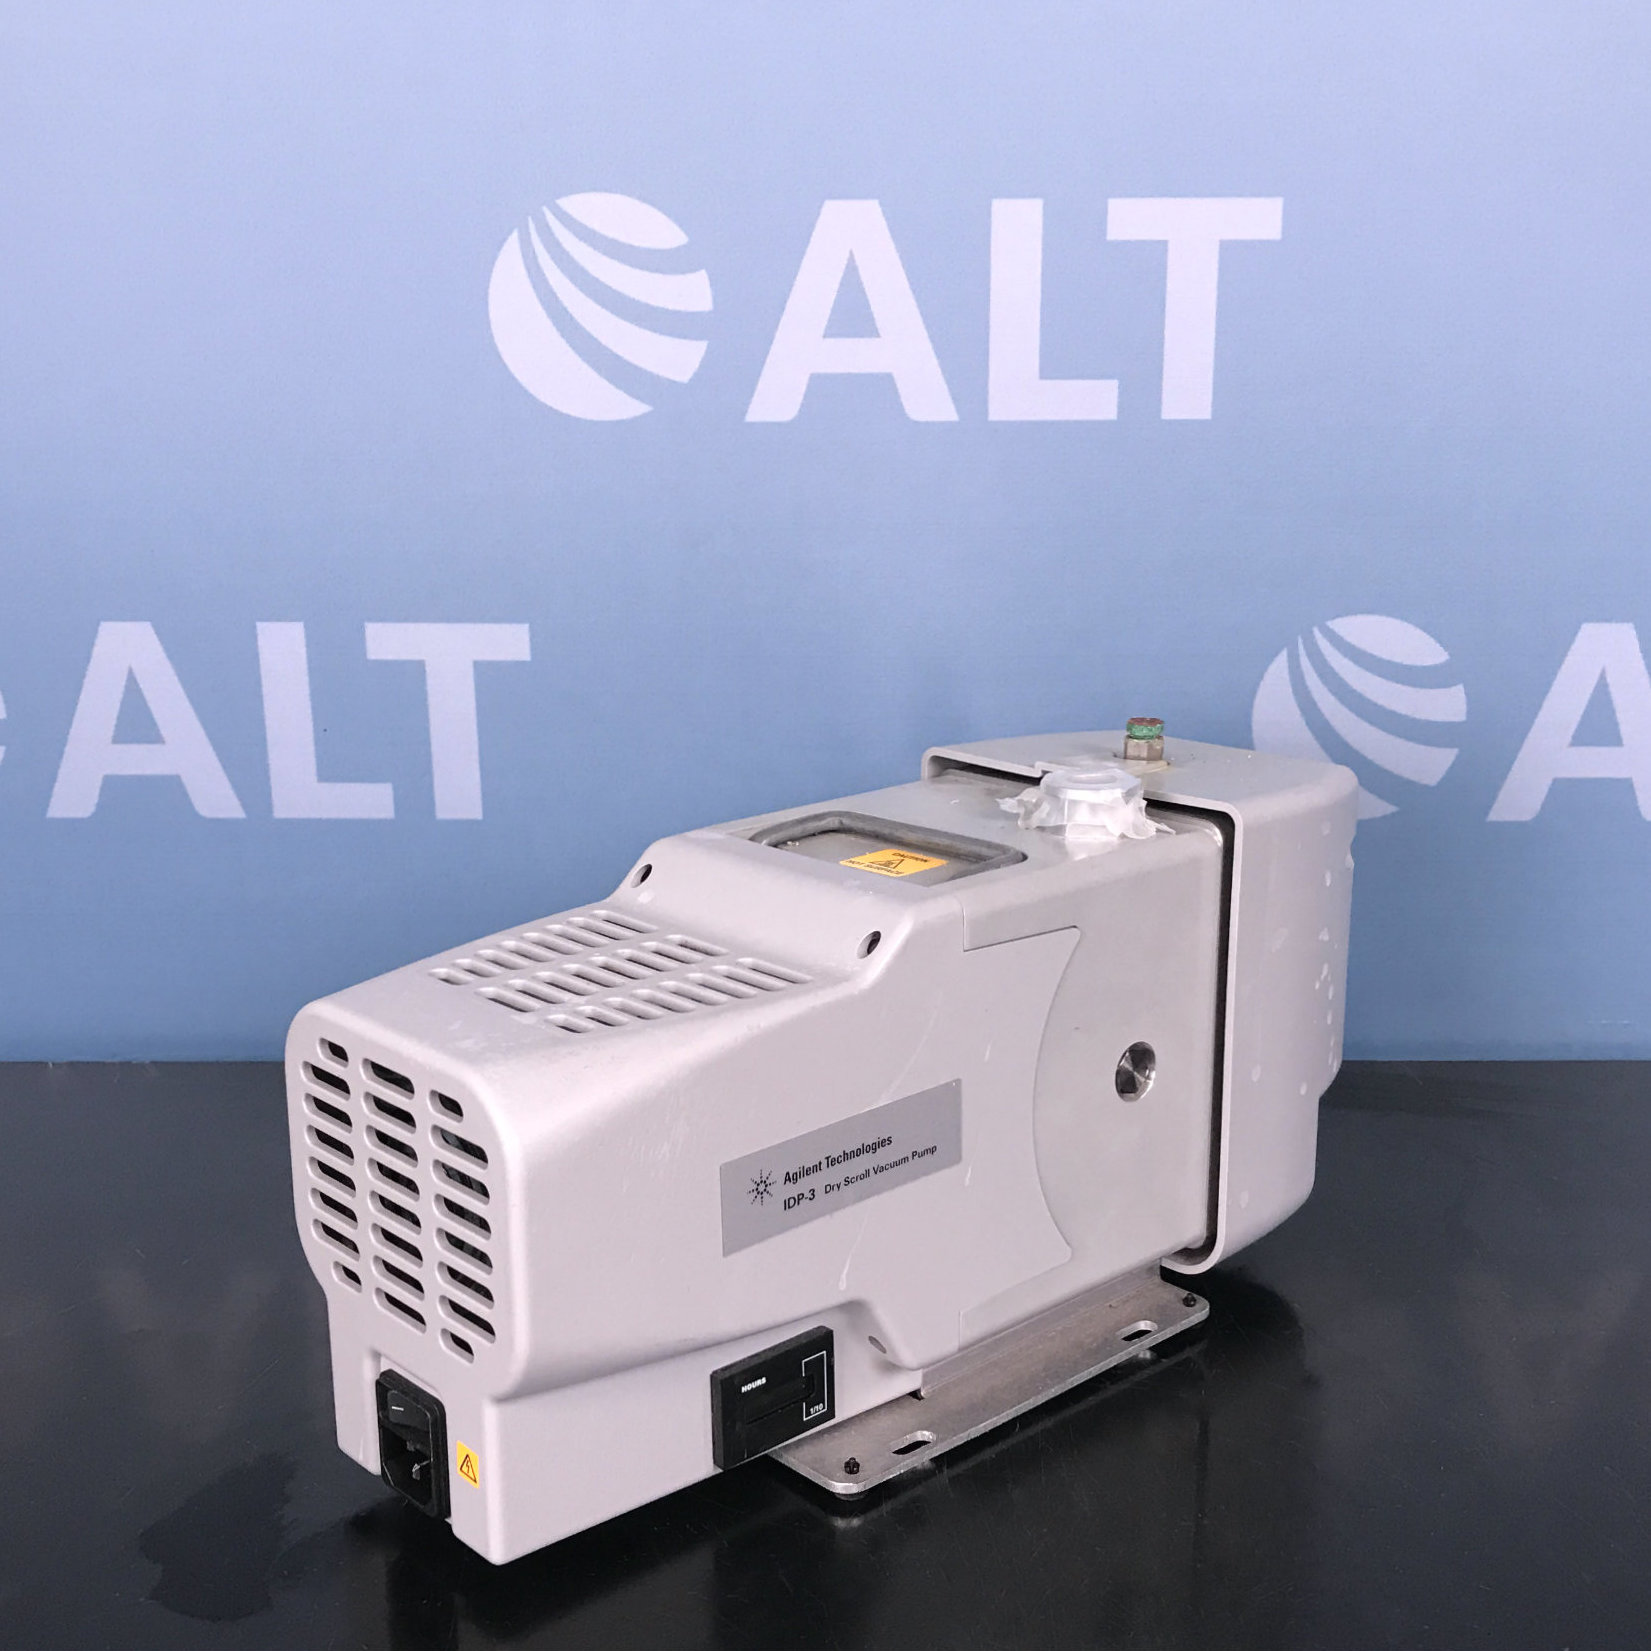 Agilent Technologies IDP-3 Dry Scroll Vacuum Pump Image